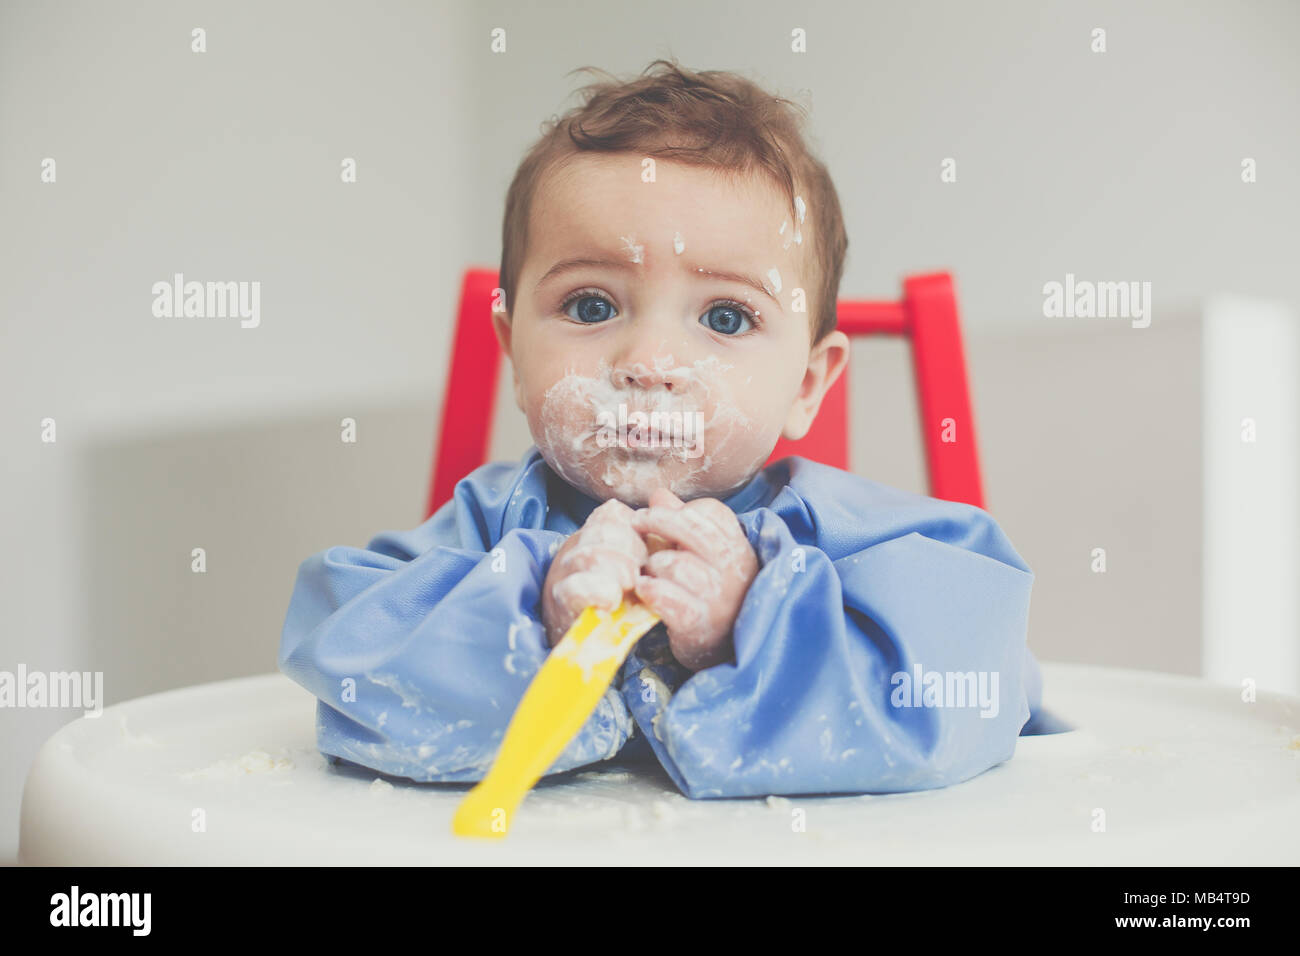 6 month old baby boy feeding himself yoghurt with a spoon - Stock Image